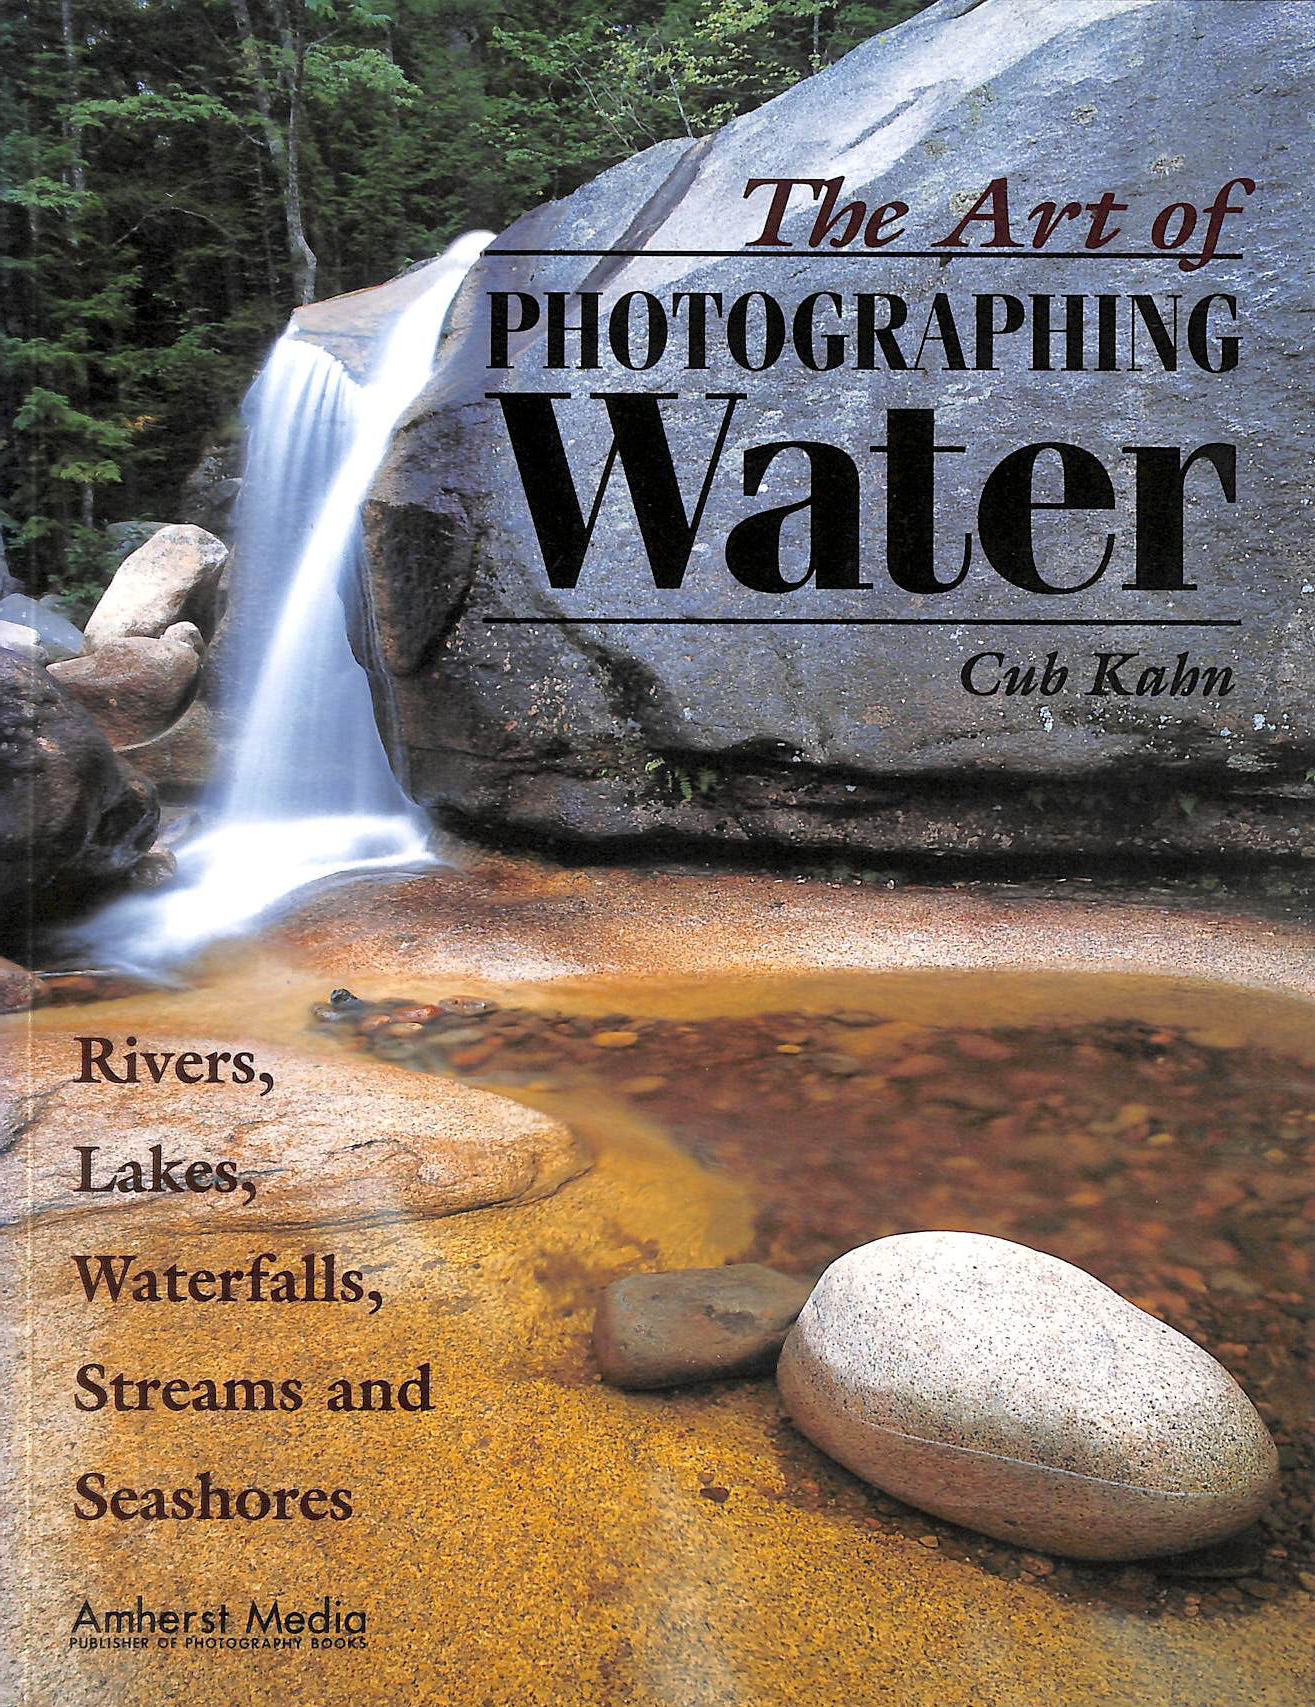 Image for The Art of Photographing Water: Rivers, Lakes, Waterfalls, Streams and Seashores: Rivers, Lakes, Waterfalls, Streams and Seashores